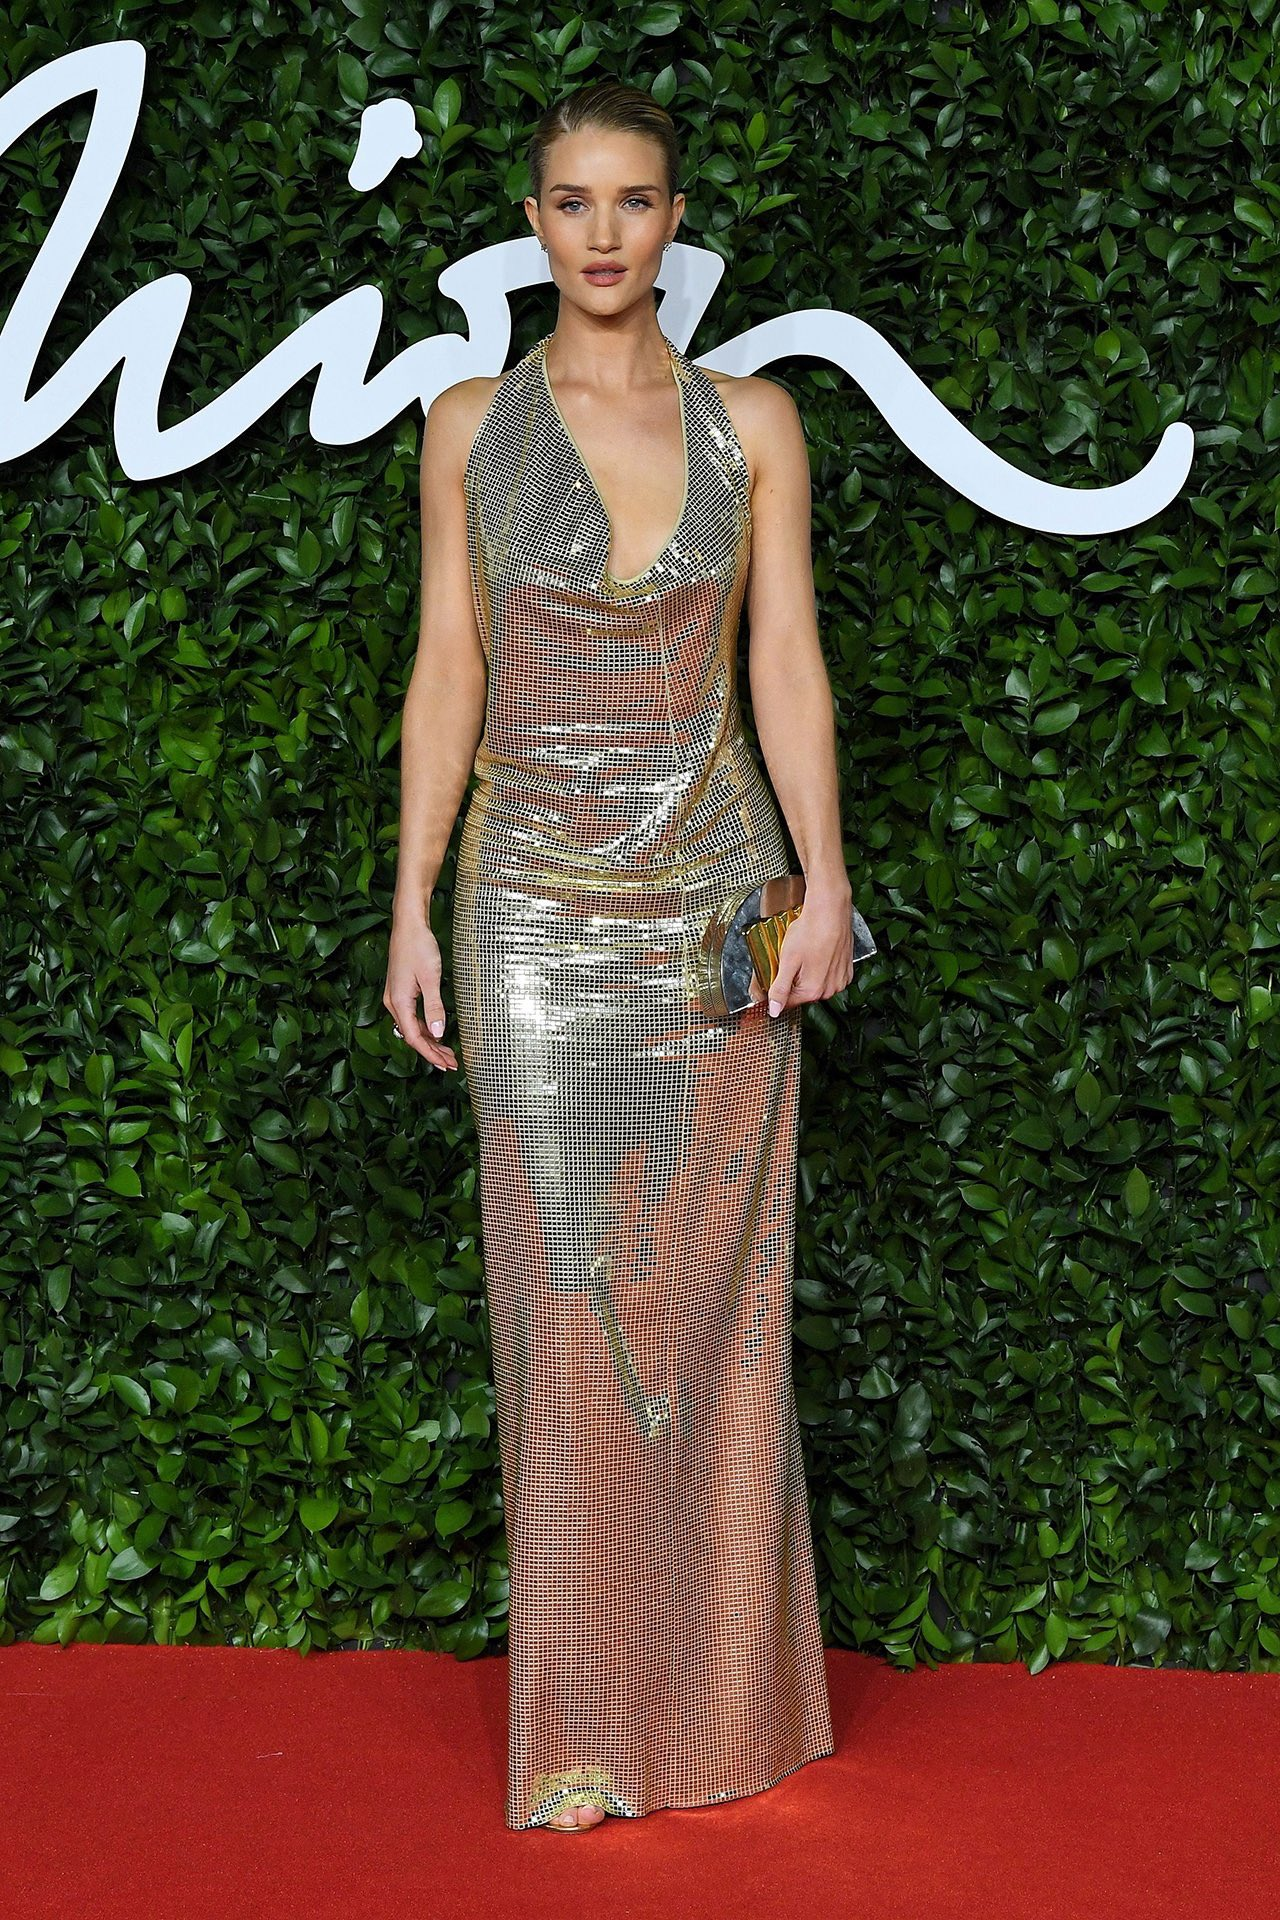 rosie-huntington-whiteley-in-bottega-veneta-2019-british-fashion-council-awards